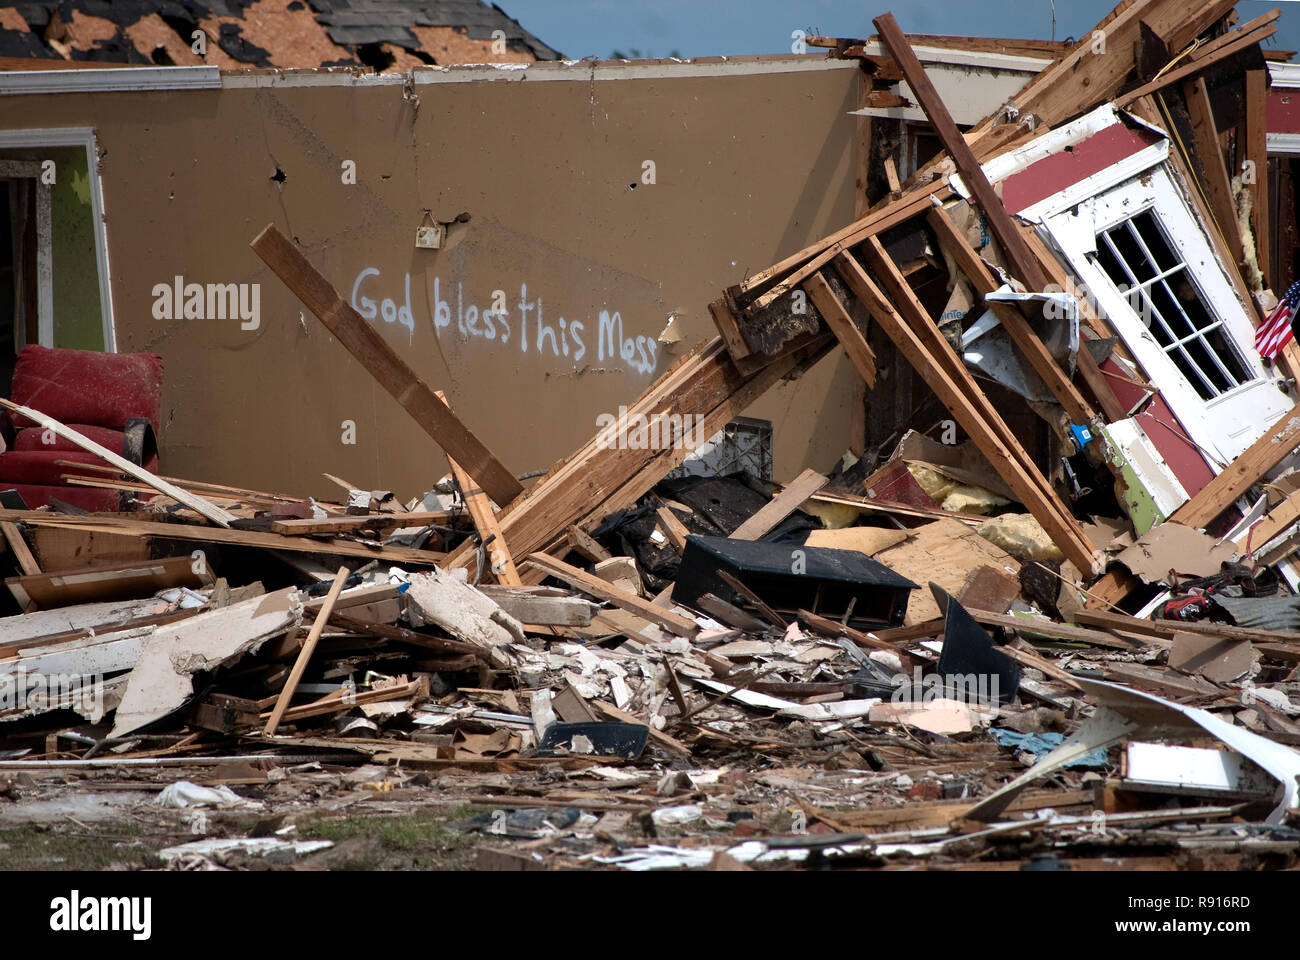 Words scrawled on the side of a damaged house greet passersby with a message of faith, on May 1, 2011, after a tornado in Smithville, Mississippi. - Stock Image